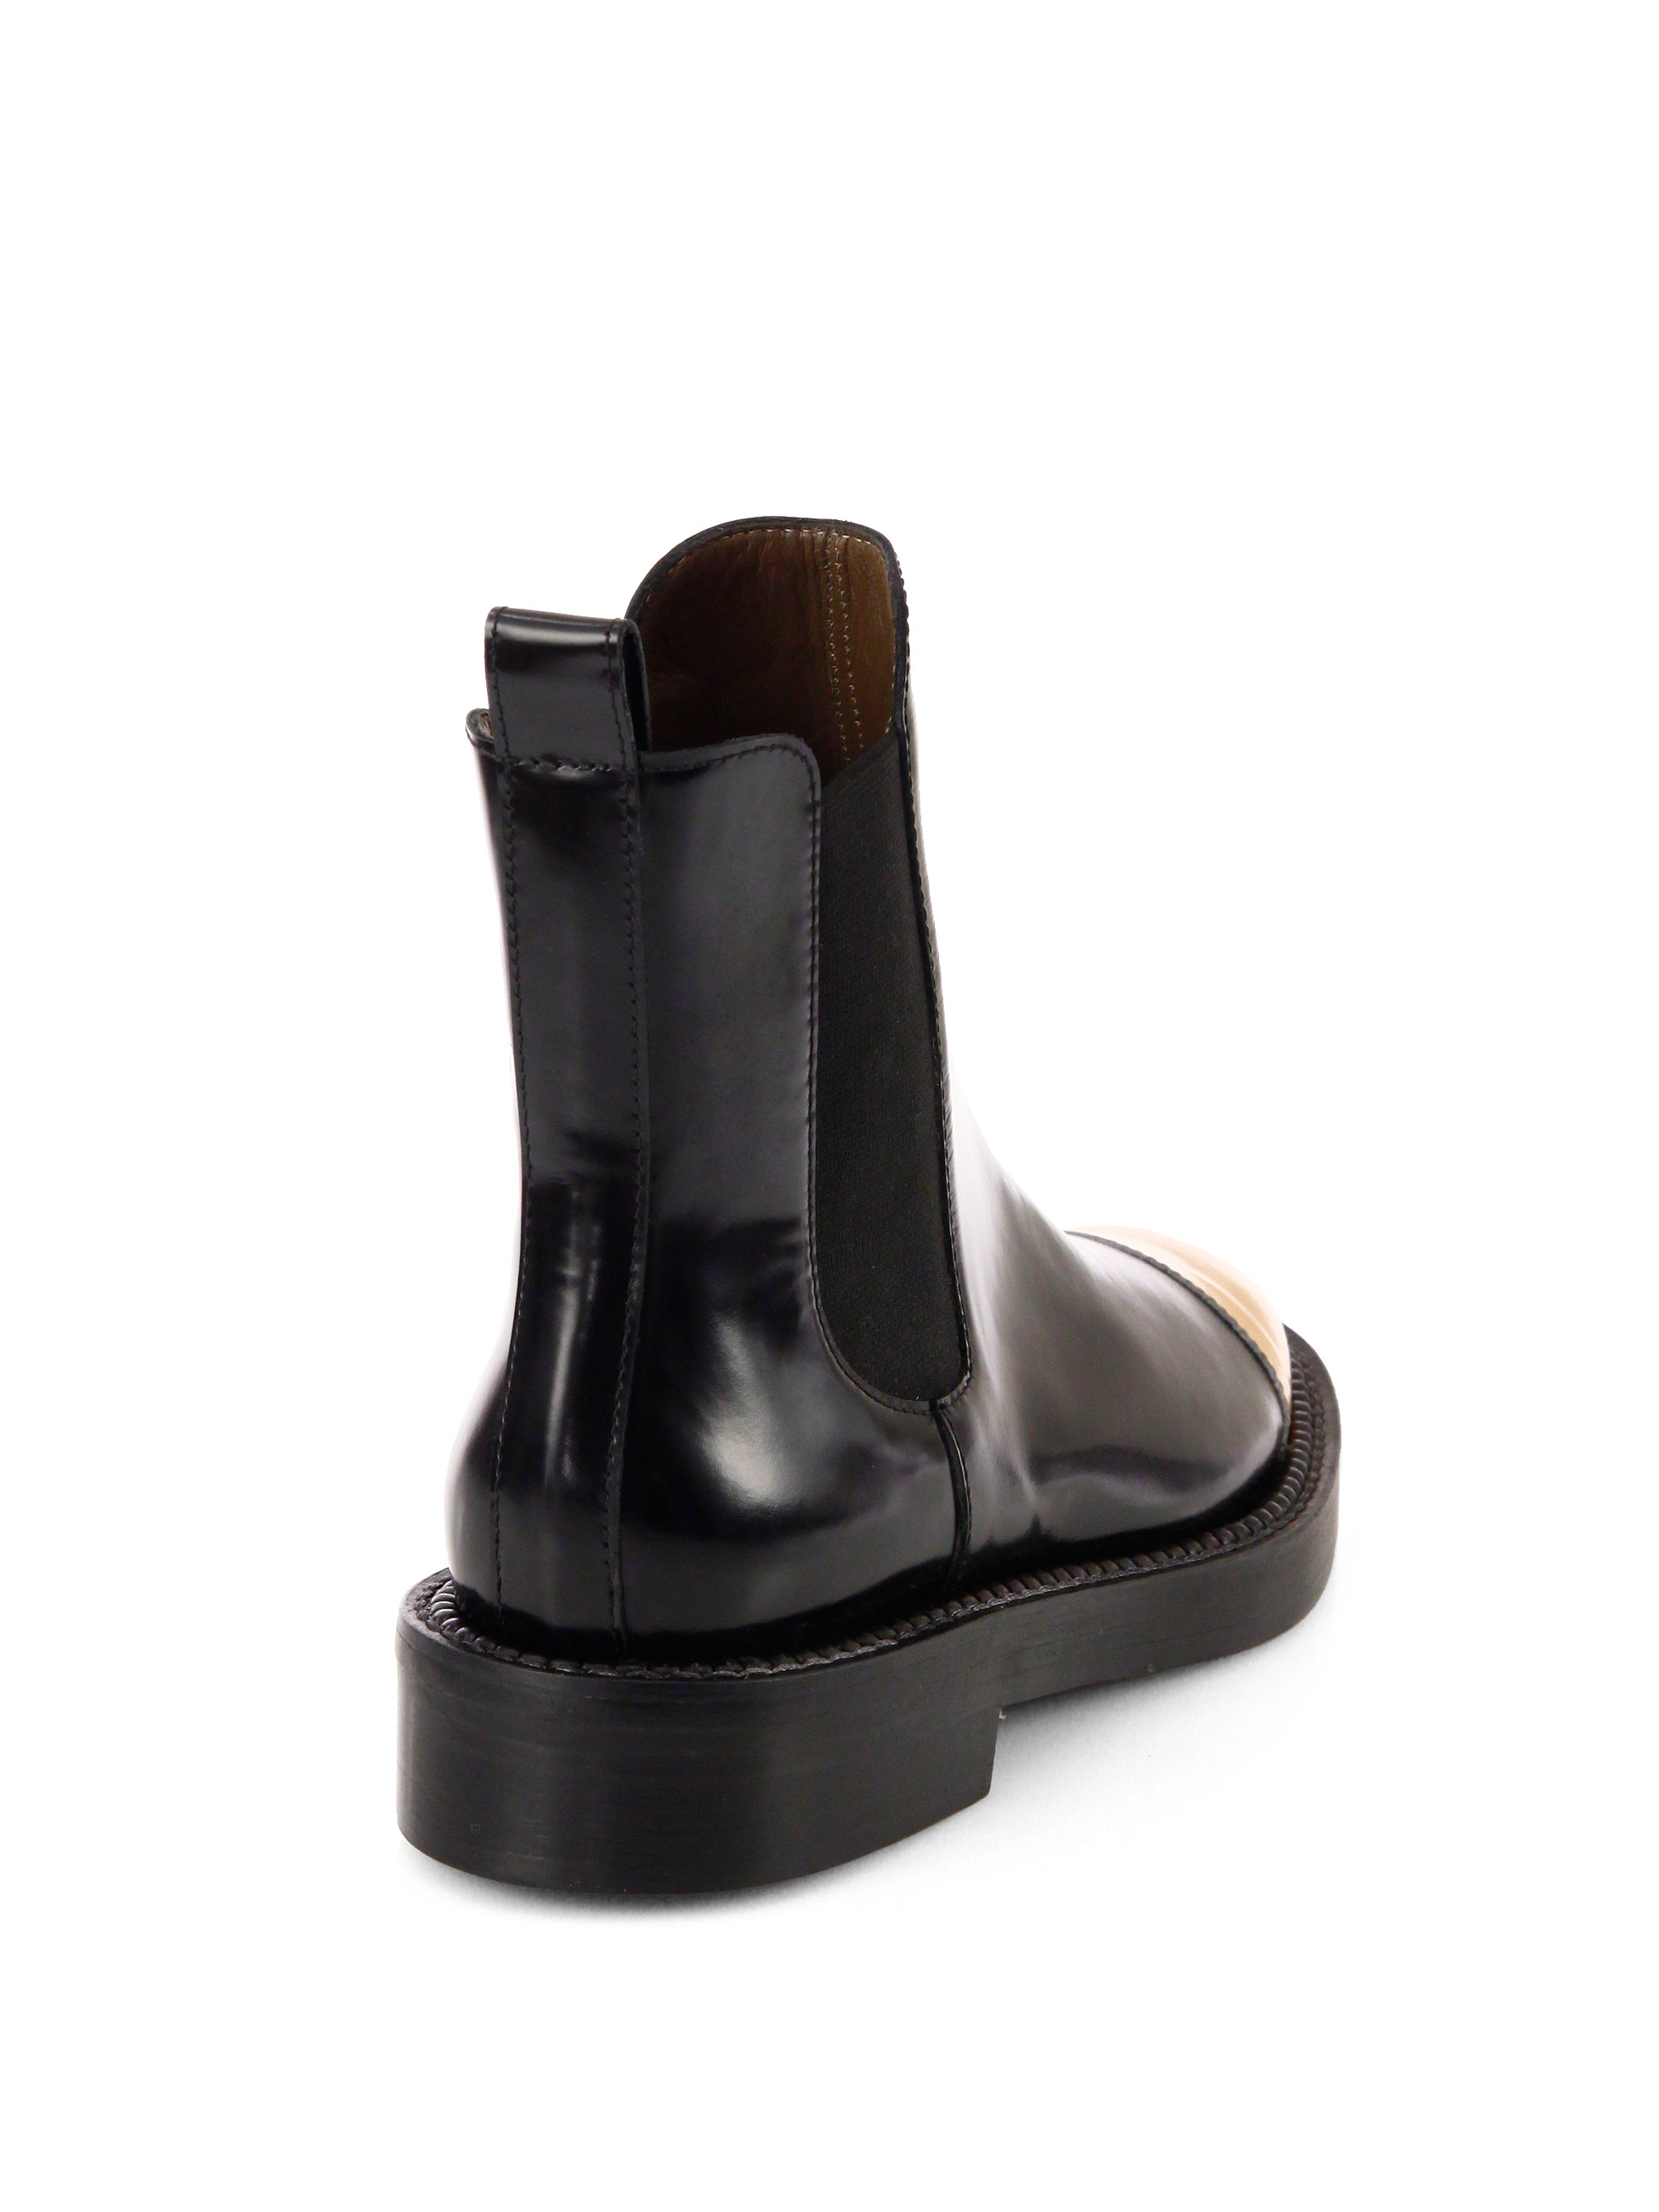 Marni Leather Biker Boots Best Wholesale For Sale Clearance Big Sale Buy Cheap Online Cheap Prices CYgbHMDAPj